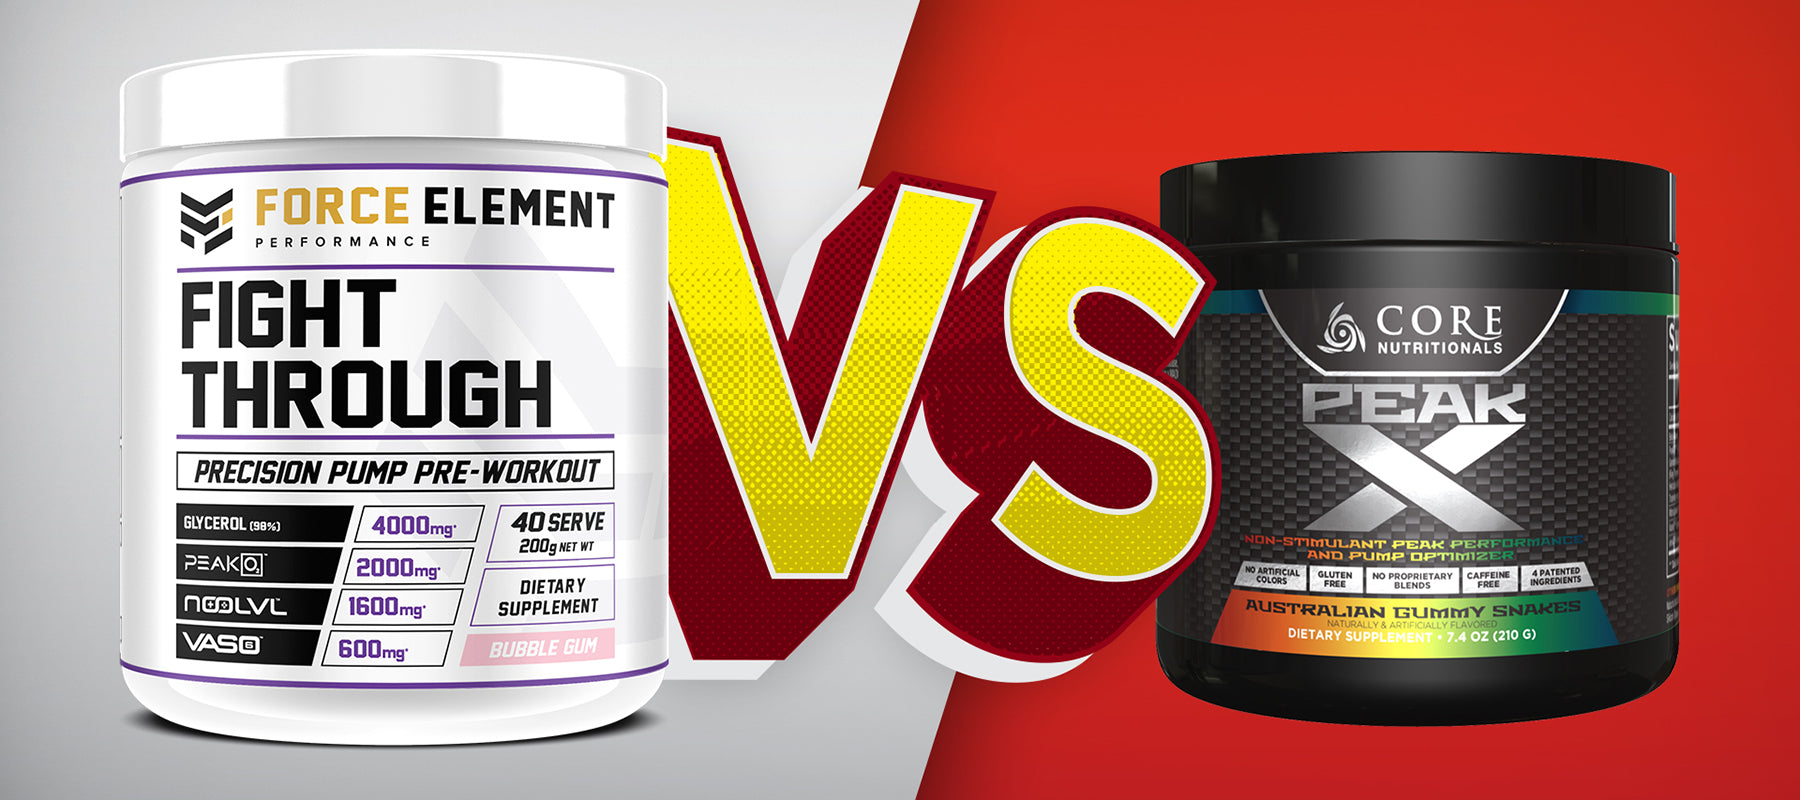 Force Element Performance Fight Through v Core Nutritionals Peak X | SUPPWARS